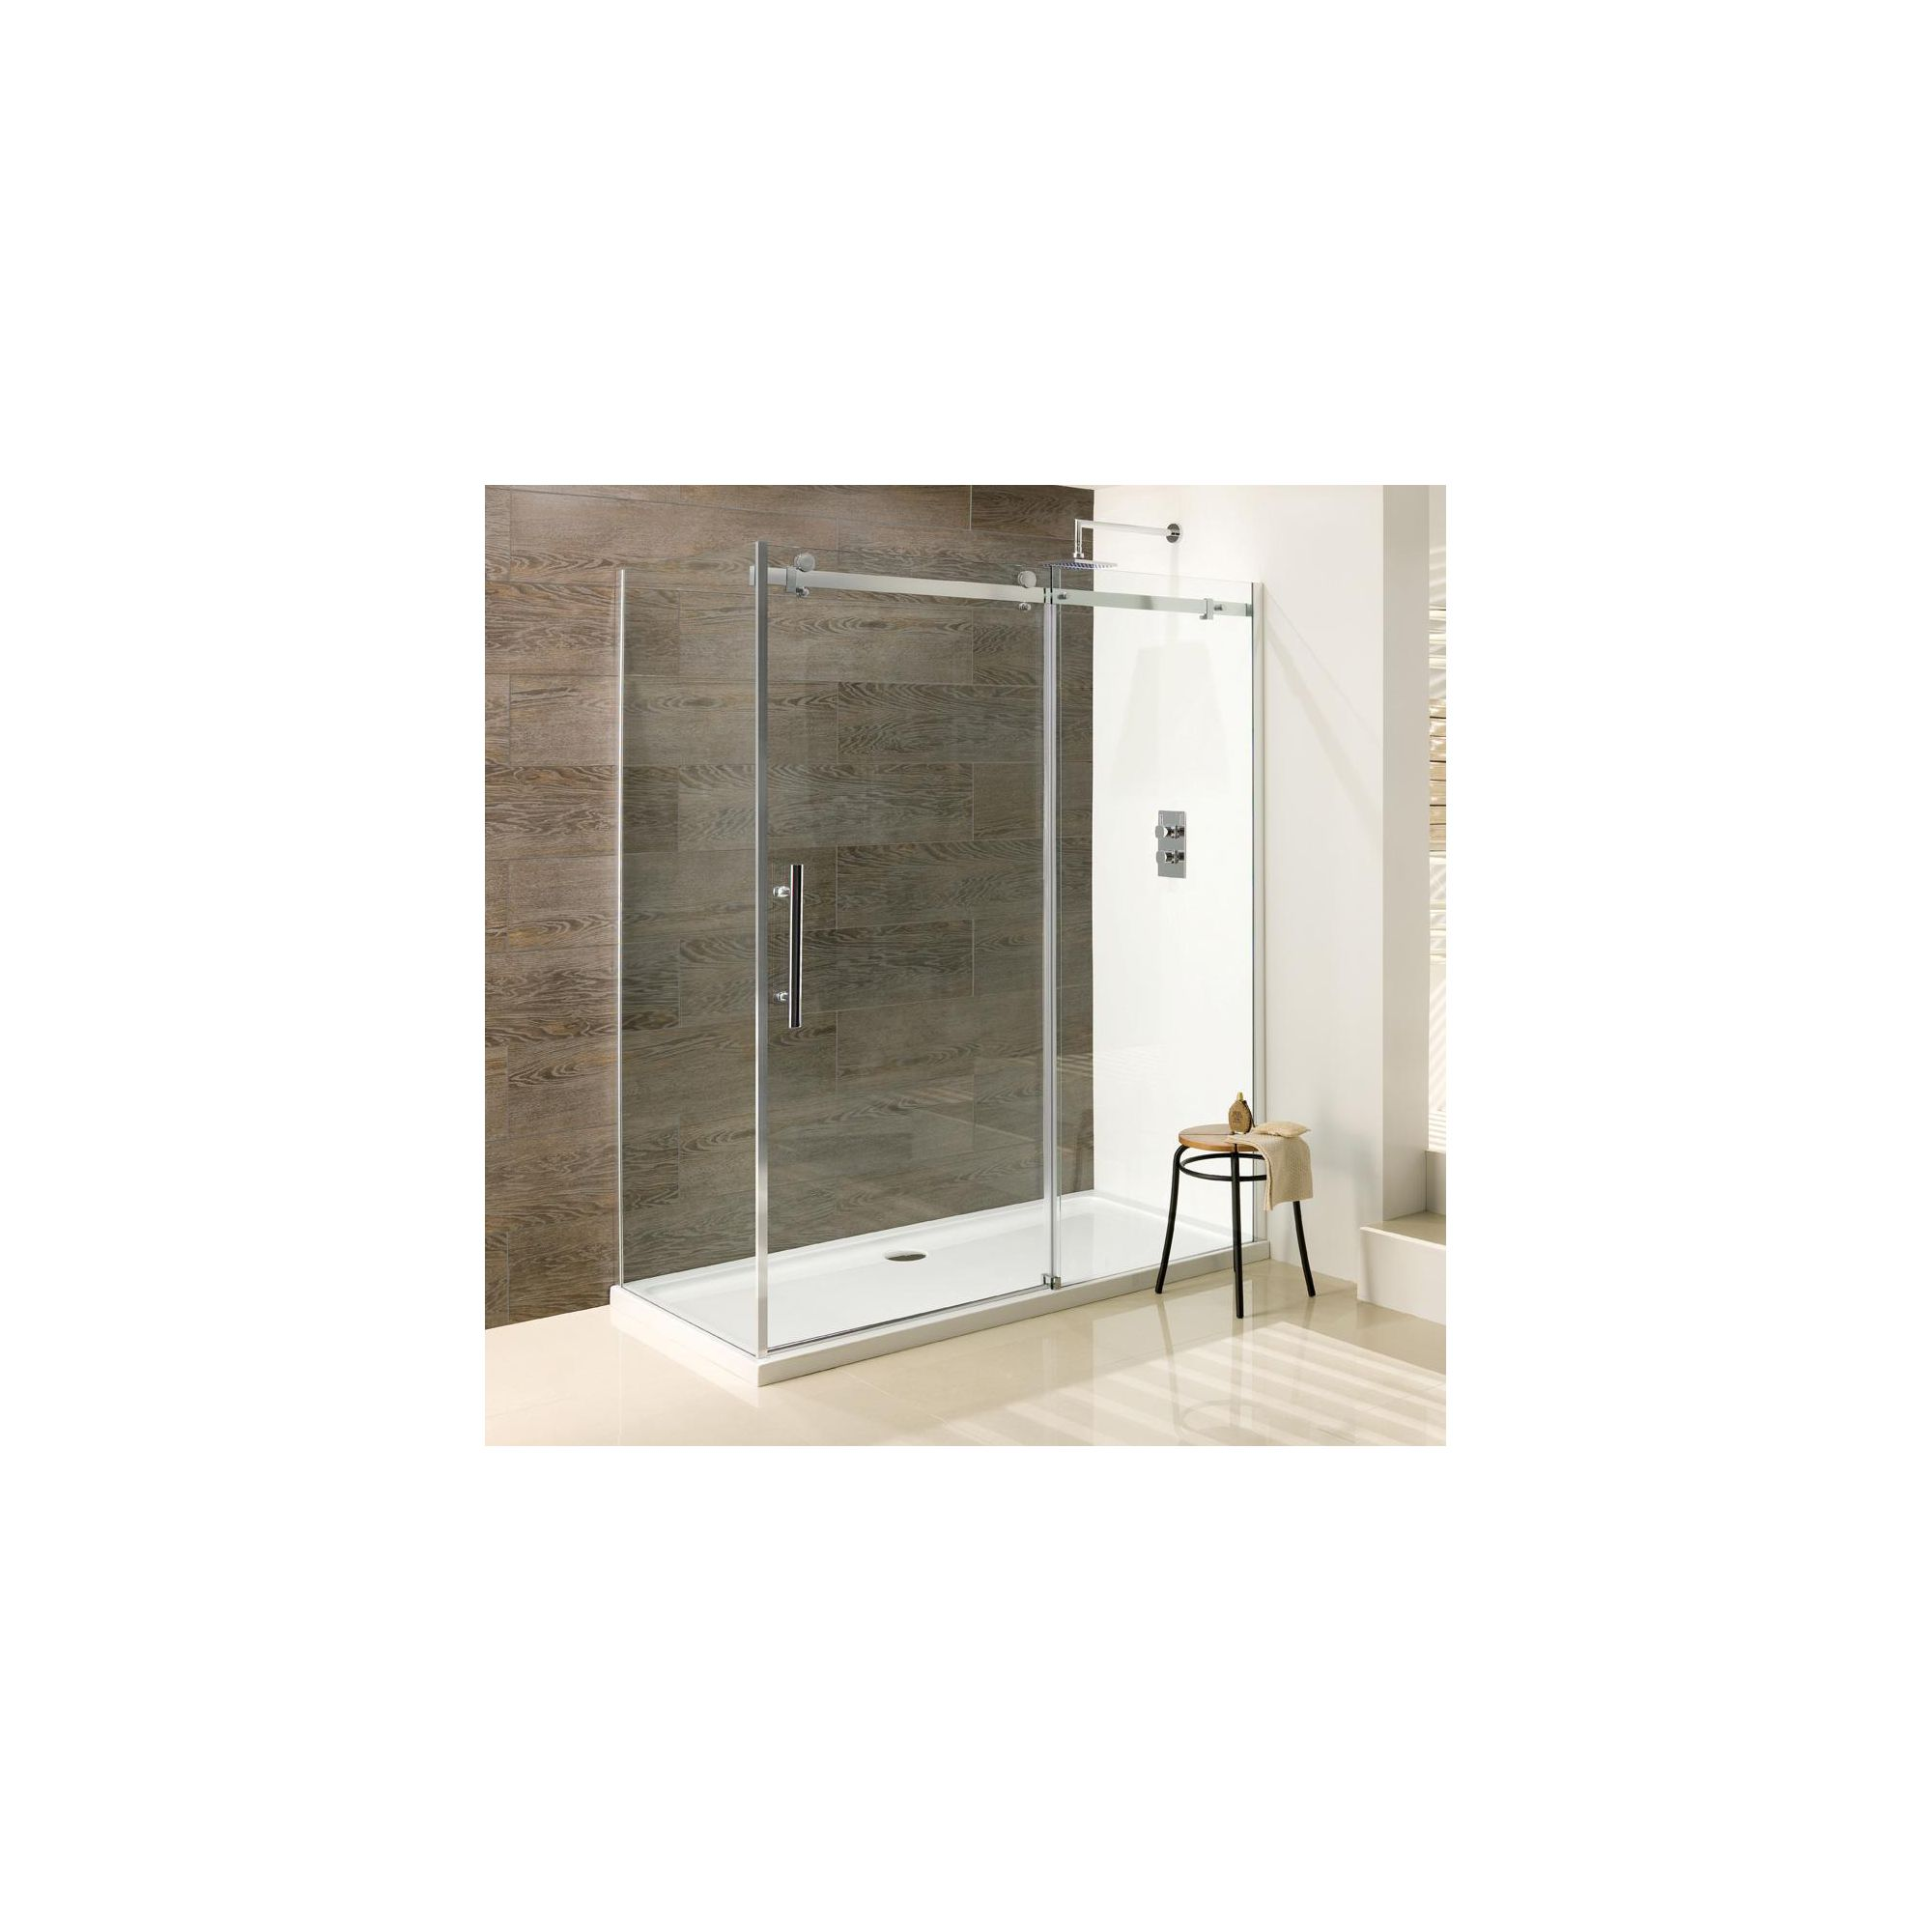 Duchy Deluxe Silver Sliding Door Shower Enclosure with Side Panel 1200mm x 760mm (Complete with Tray), 10mm Glass at Tesco Direct